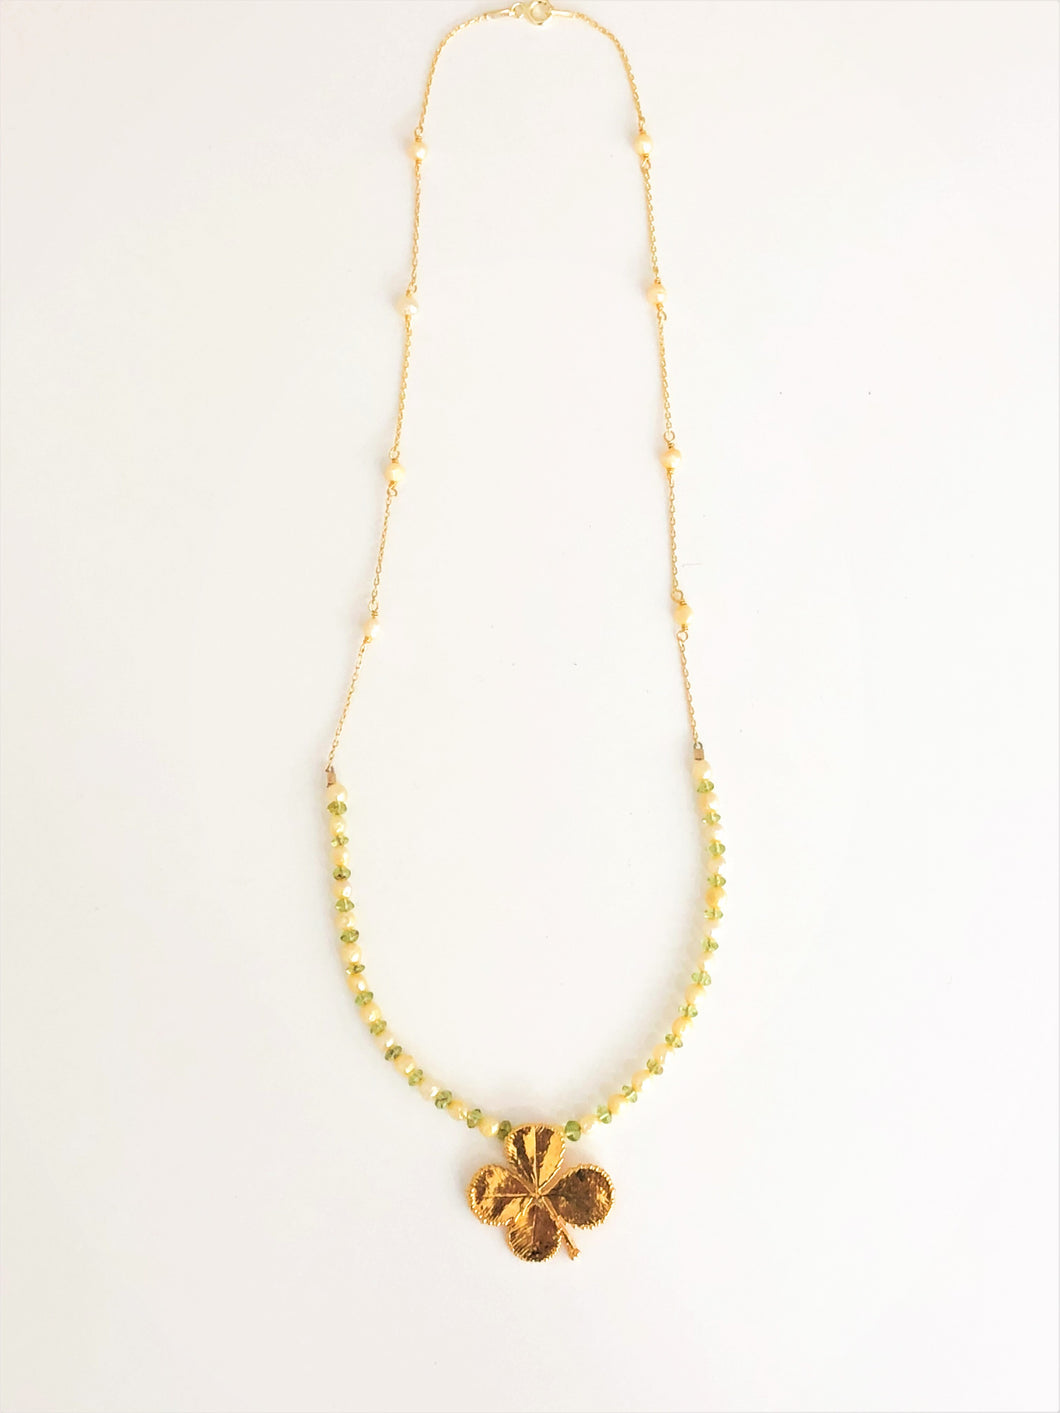 Natural Clover Necklace - Sufi Design